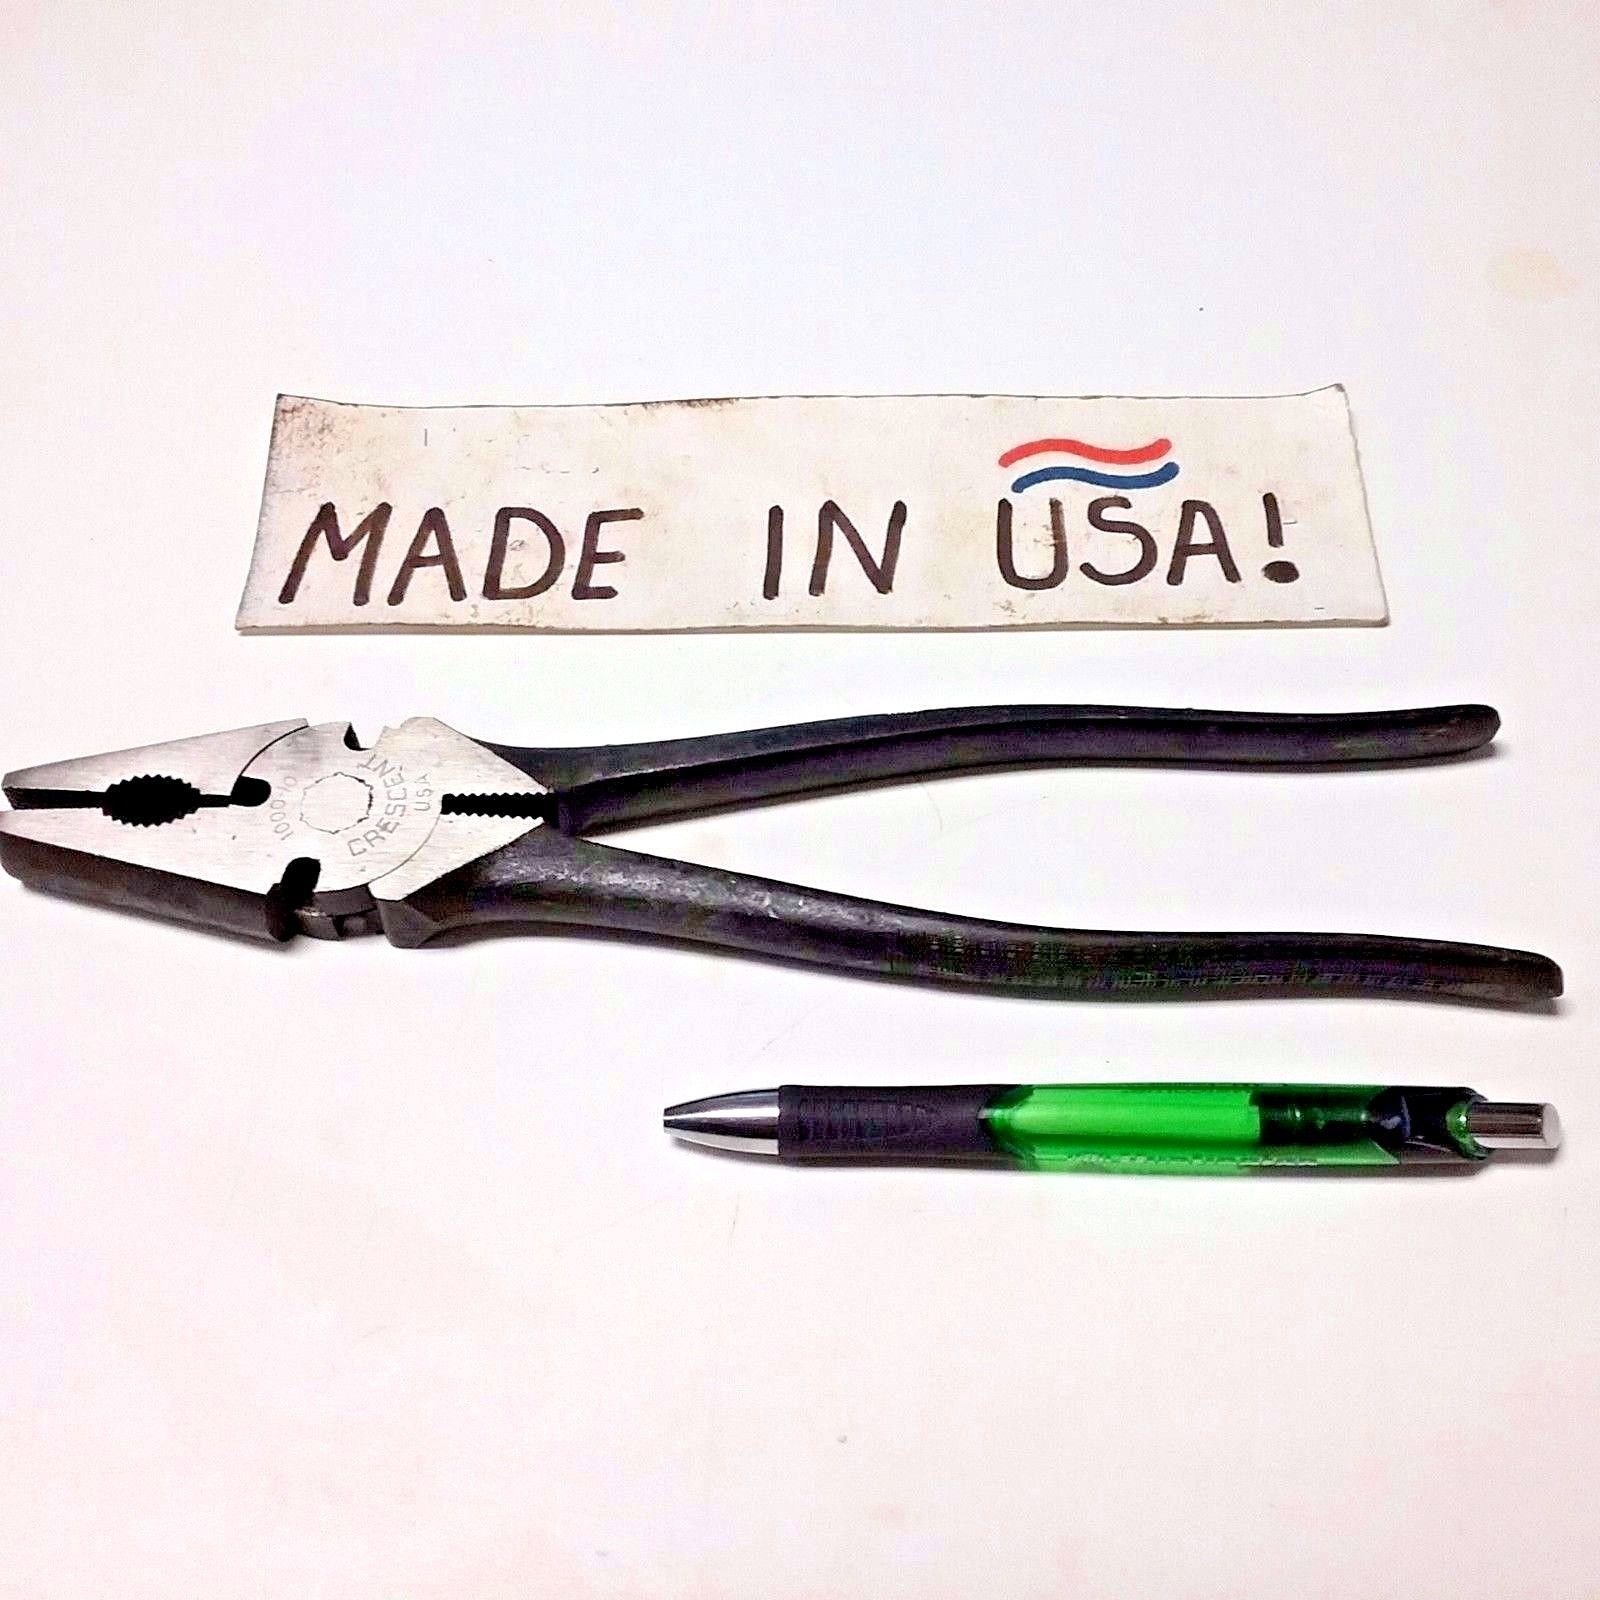 10'' Crescent Heavy Duty Button Plier Fence Tool -Side Cutting- #1000-10 NOS- USA